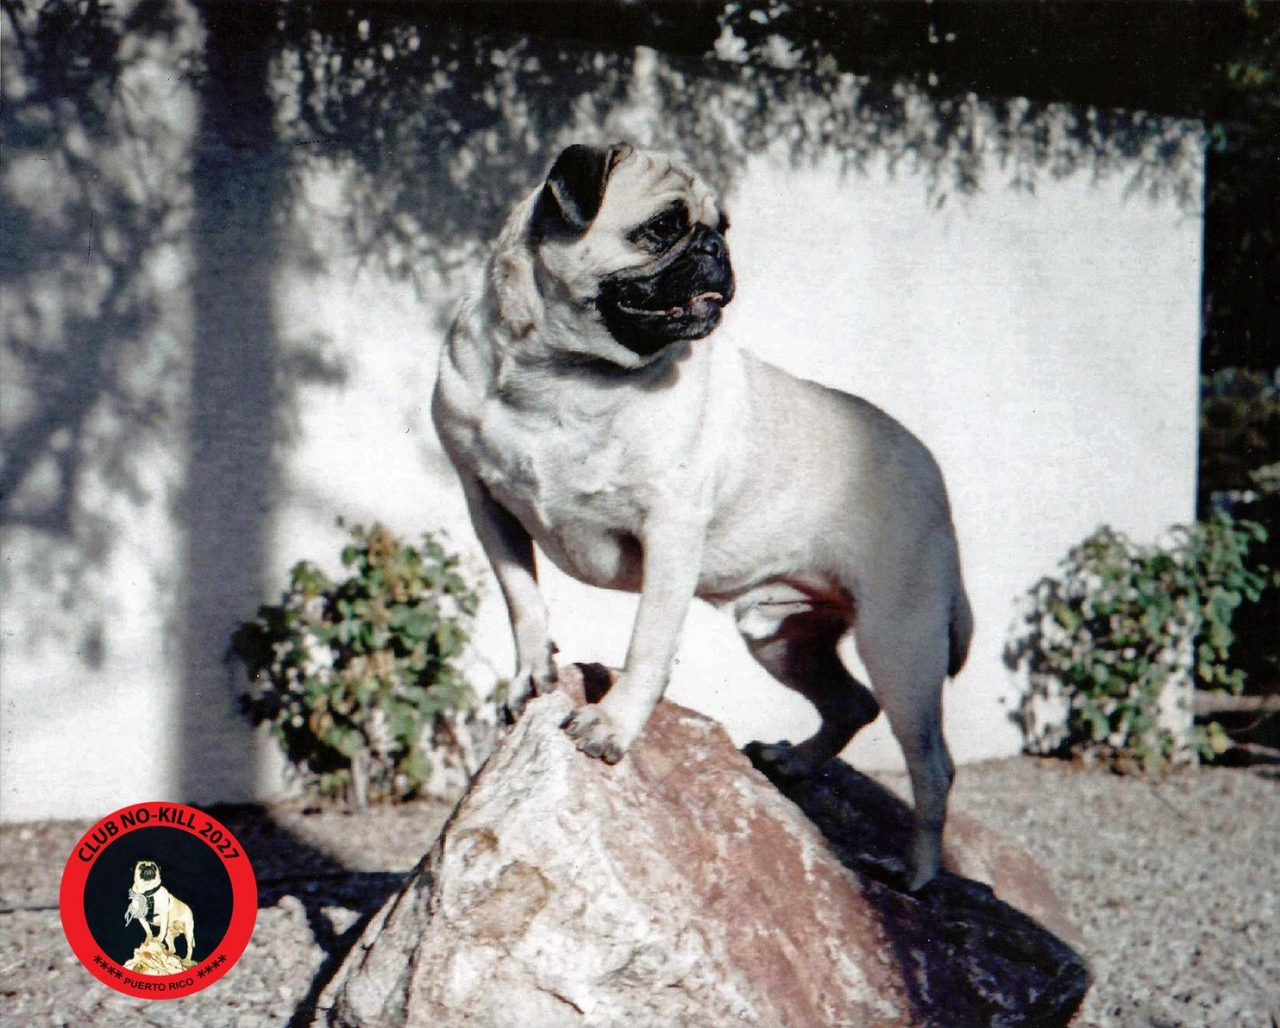 A picture from Training Rock, Phoenix by Vinny the Pug